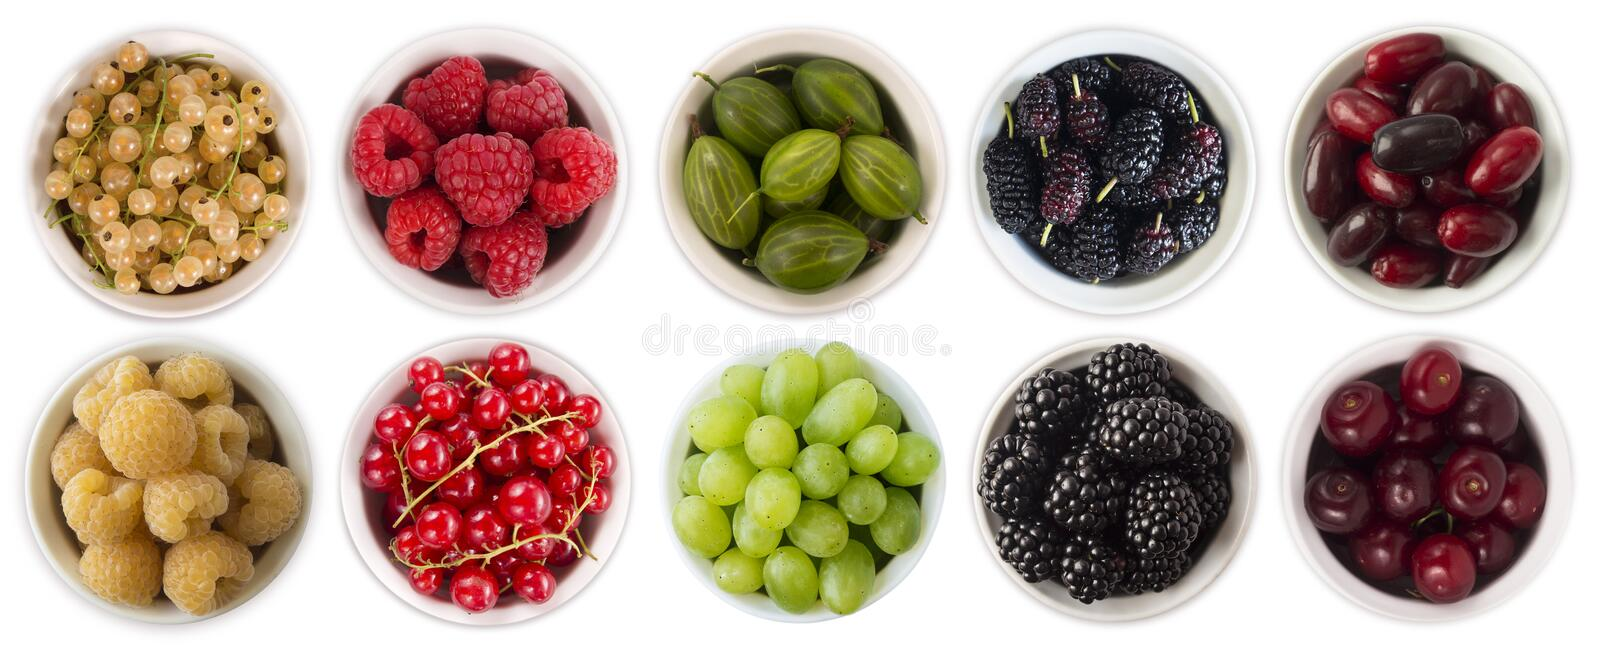 Red, black, yellow and green food. Fruits and berries in bowl isolated on white. Sweet and juicy berry with copy space for text. R stock photography